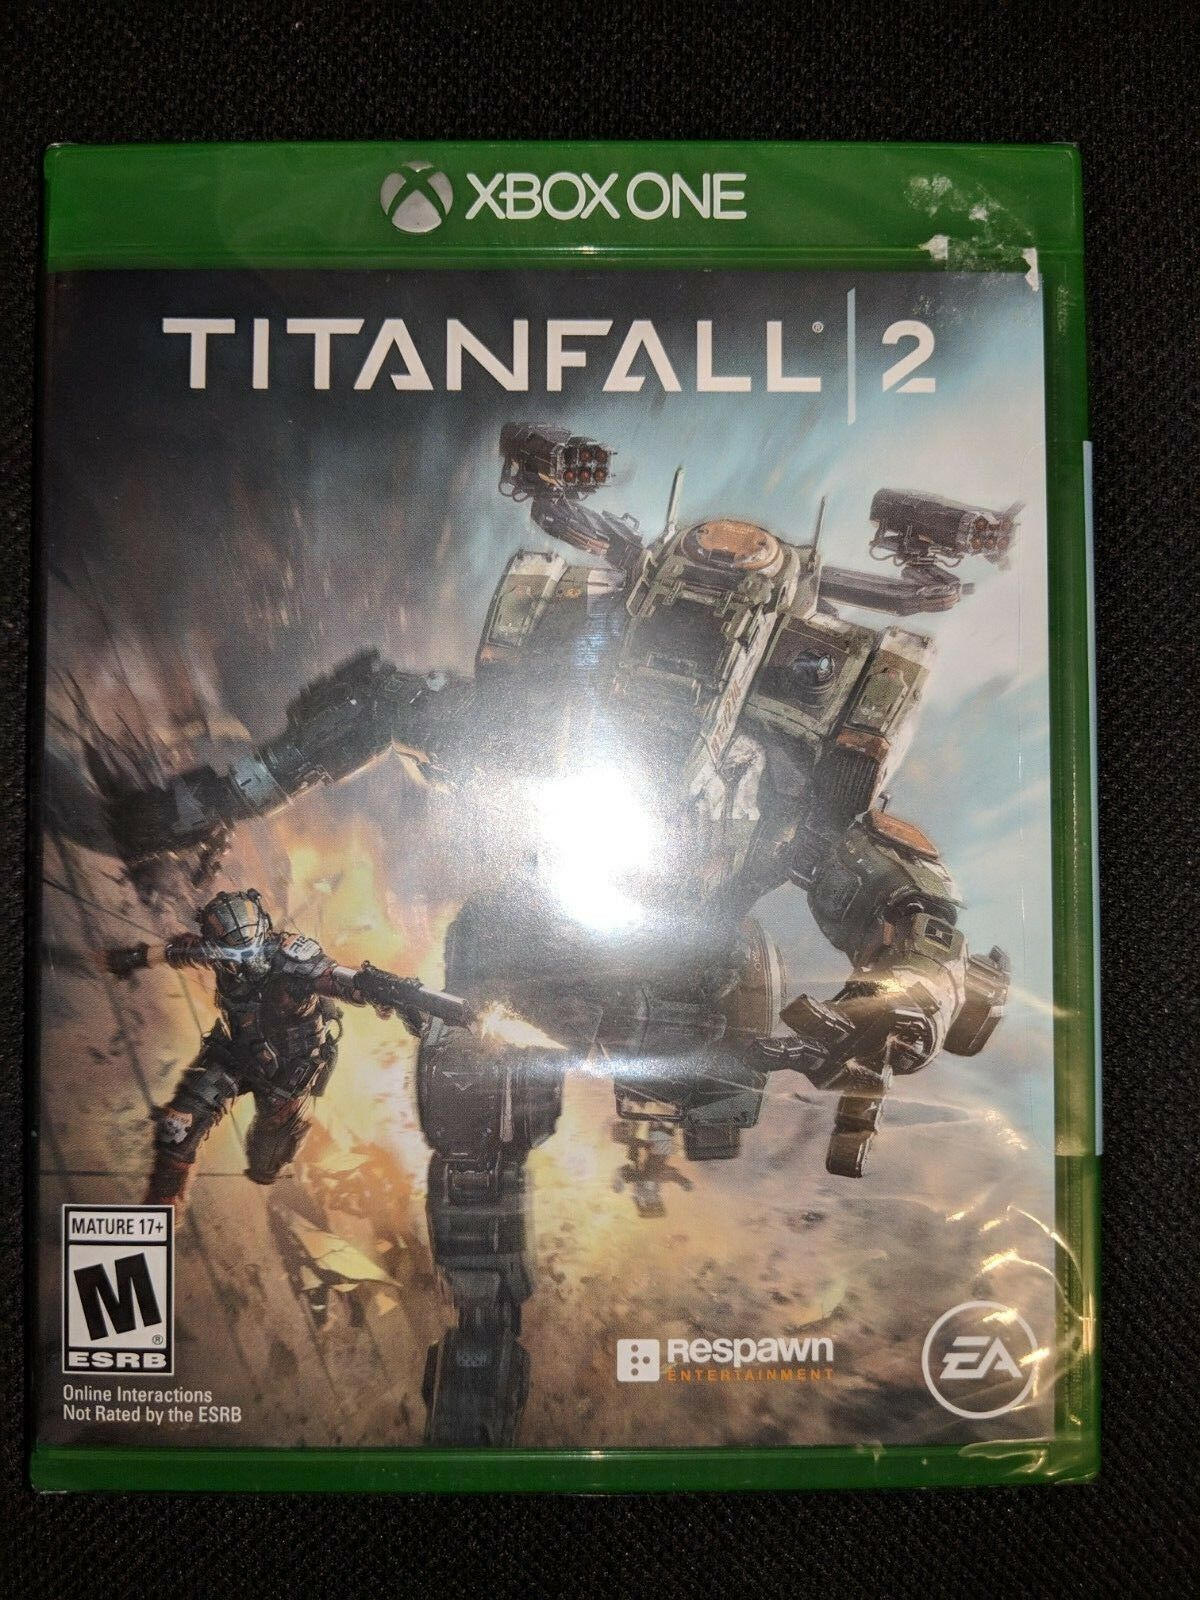 Xbox One Titanfall 2 Game Brand New Factory Sealed Xboxone